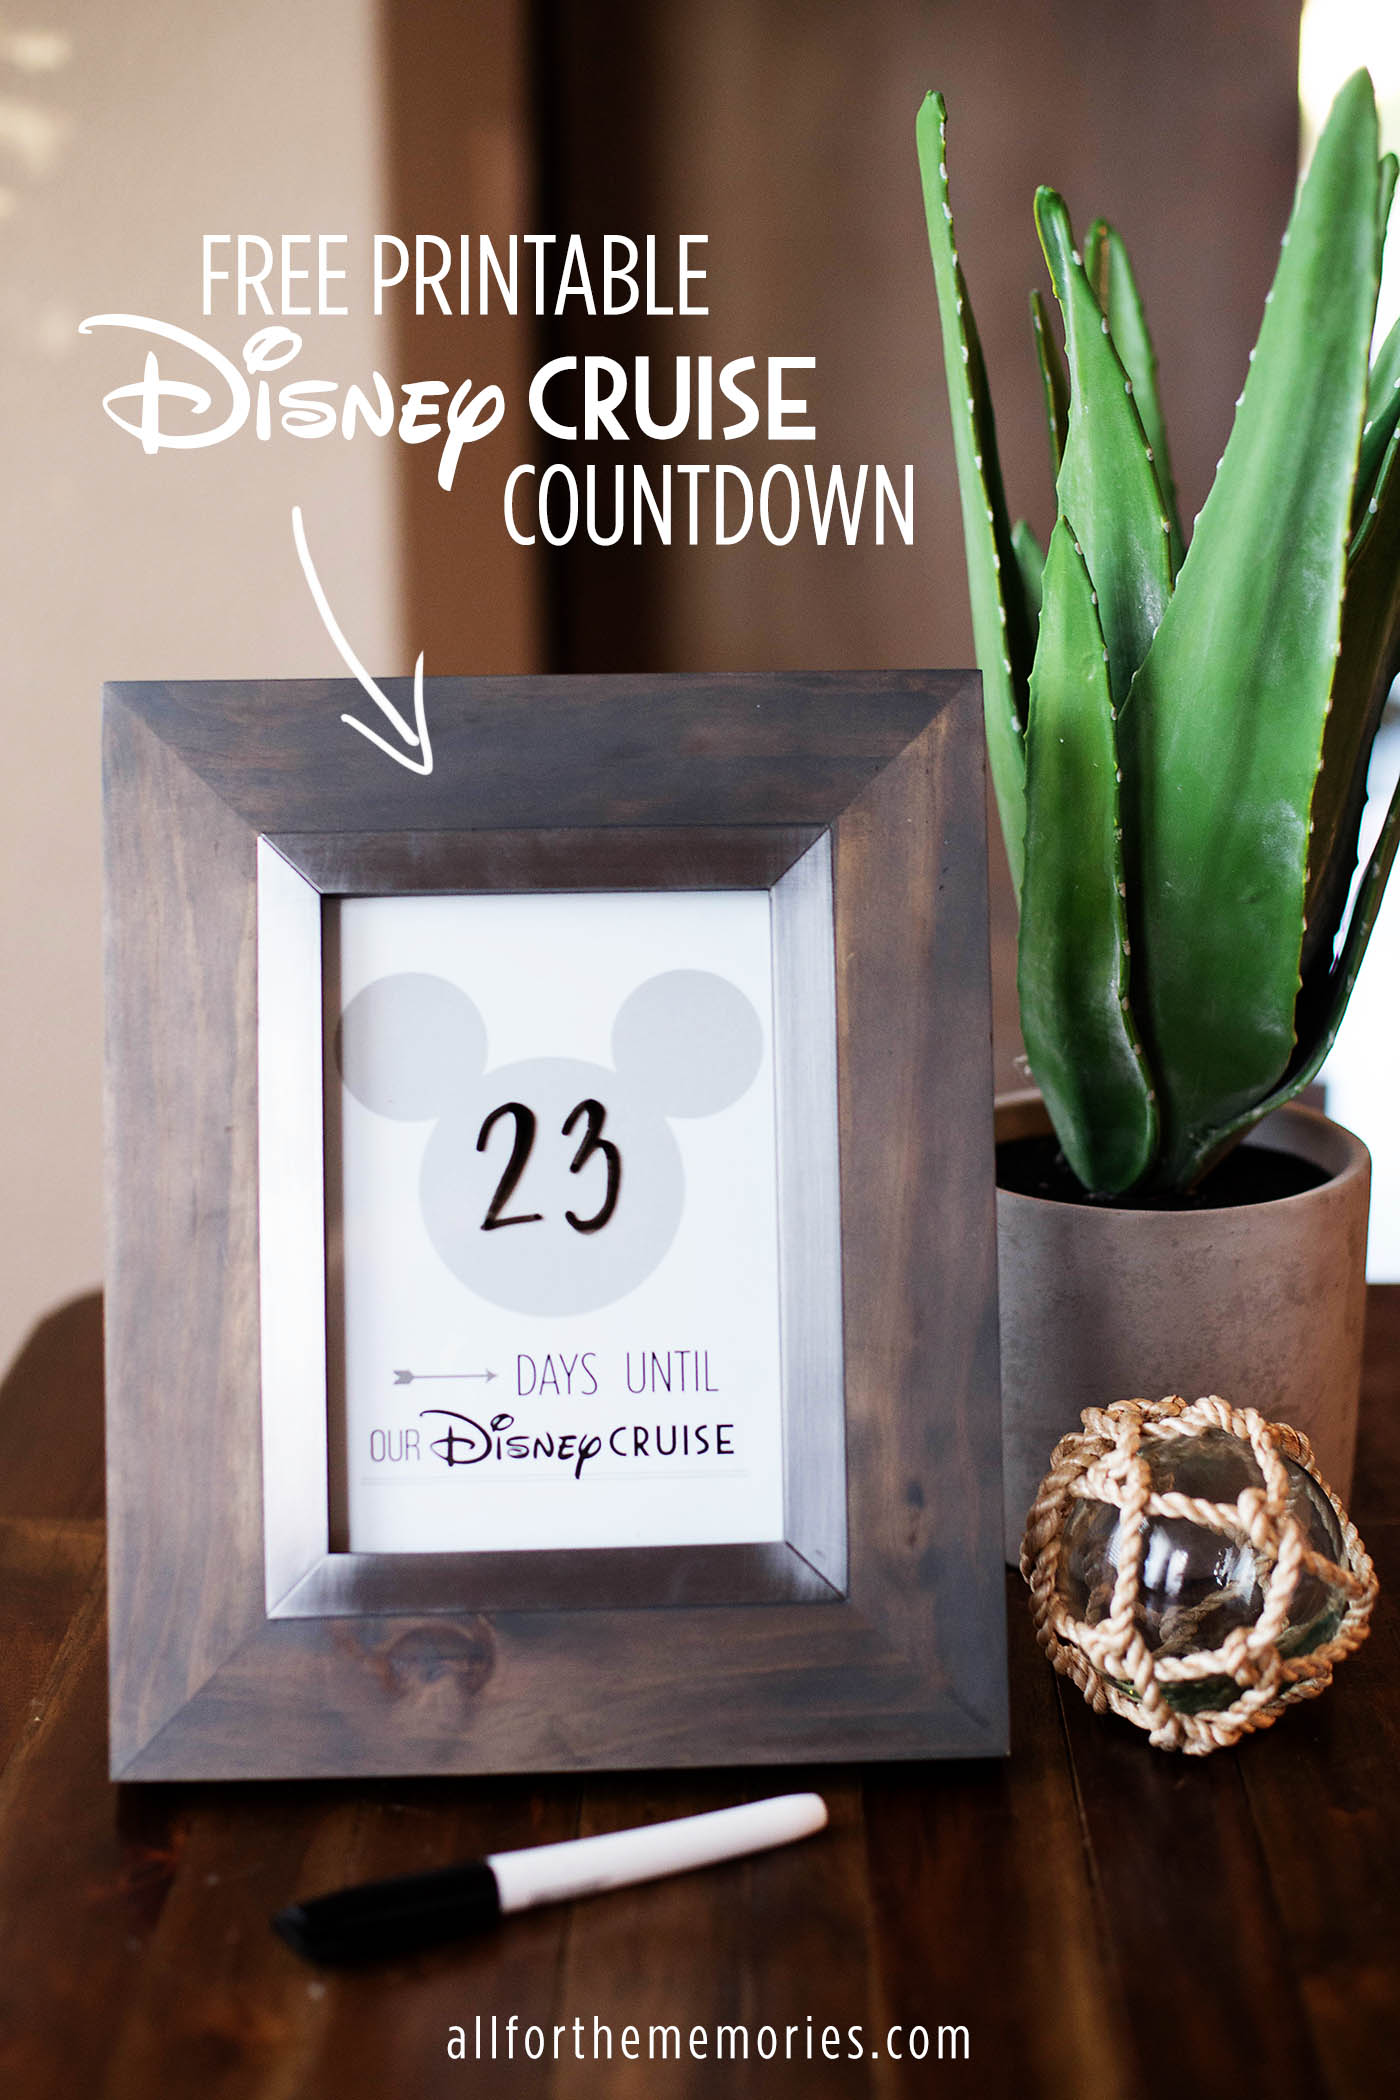 Disney Cruise Countdown! Free printable plus Disneyland and Walt Disney World